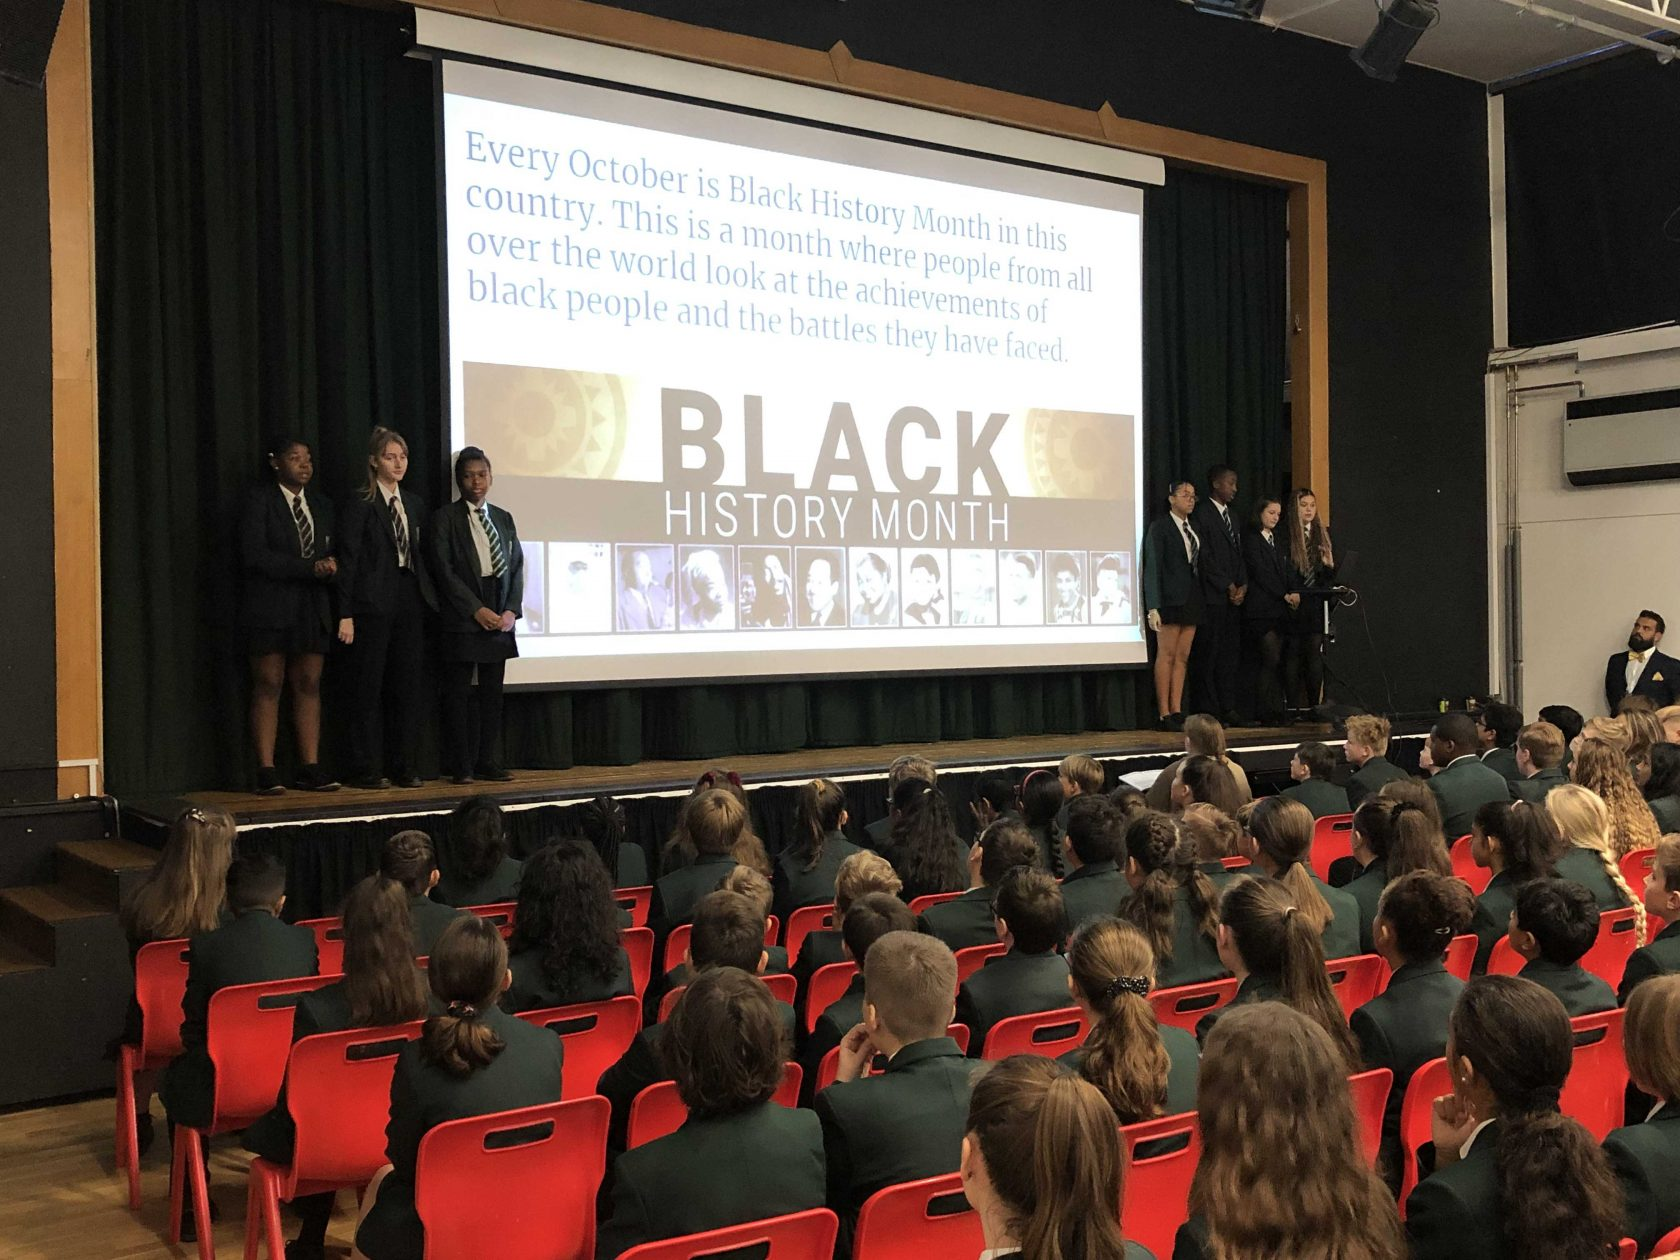 Inspirational Assembly Celebrating Our School Having a Mind to Be Kind